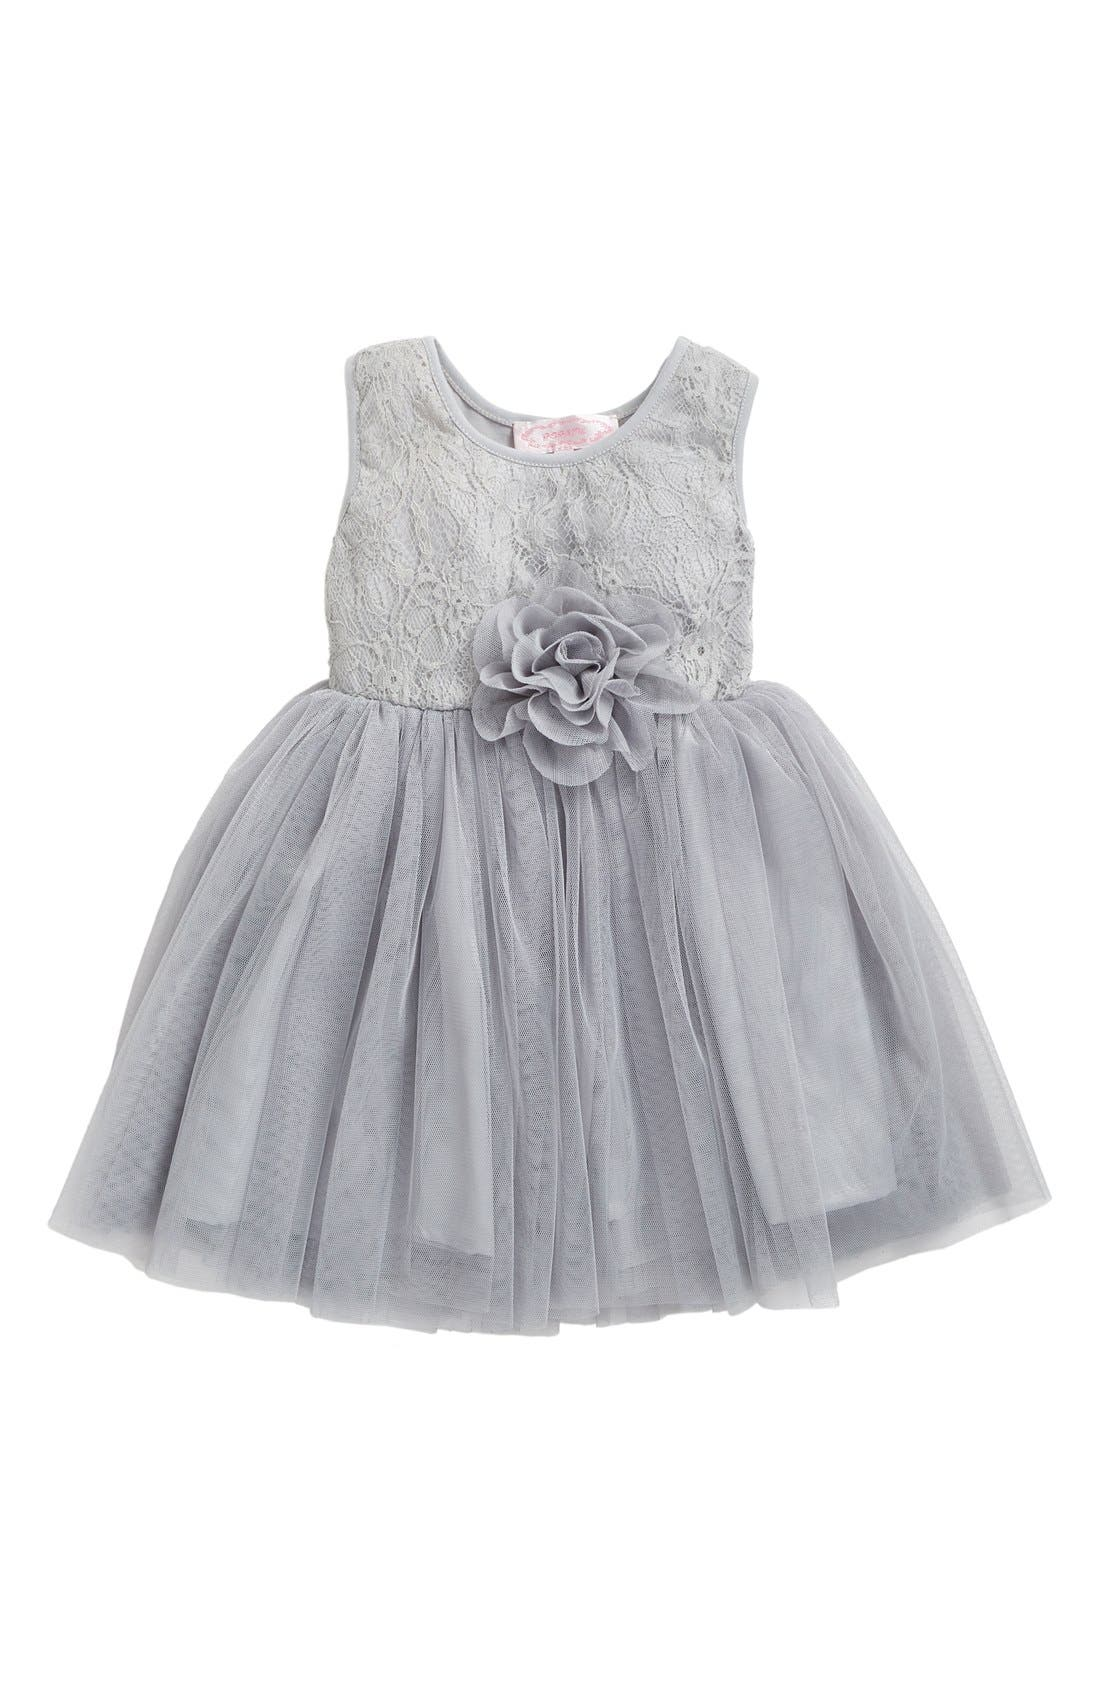 Floral Lace & Tulle Dress,                             Main thumbnail 1, color,                             SILVER